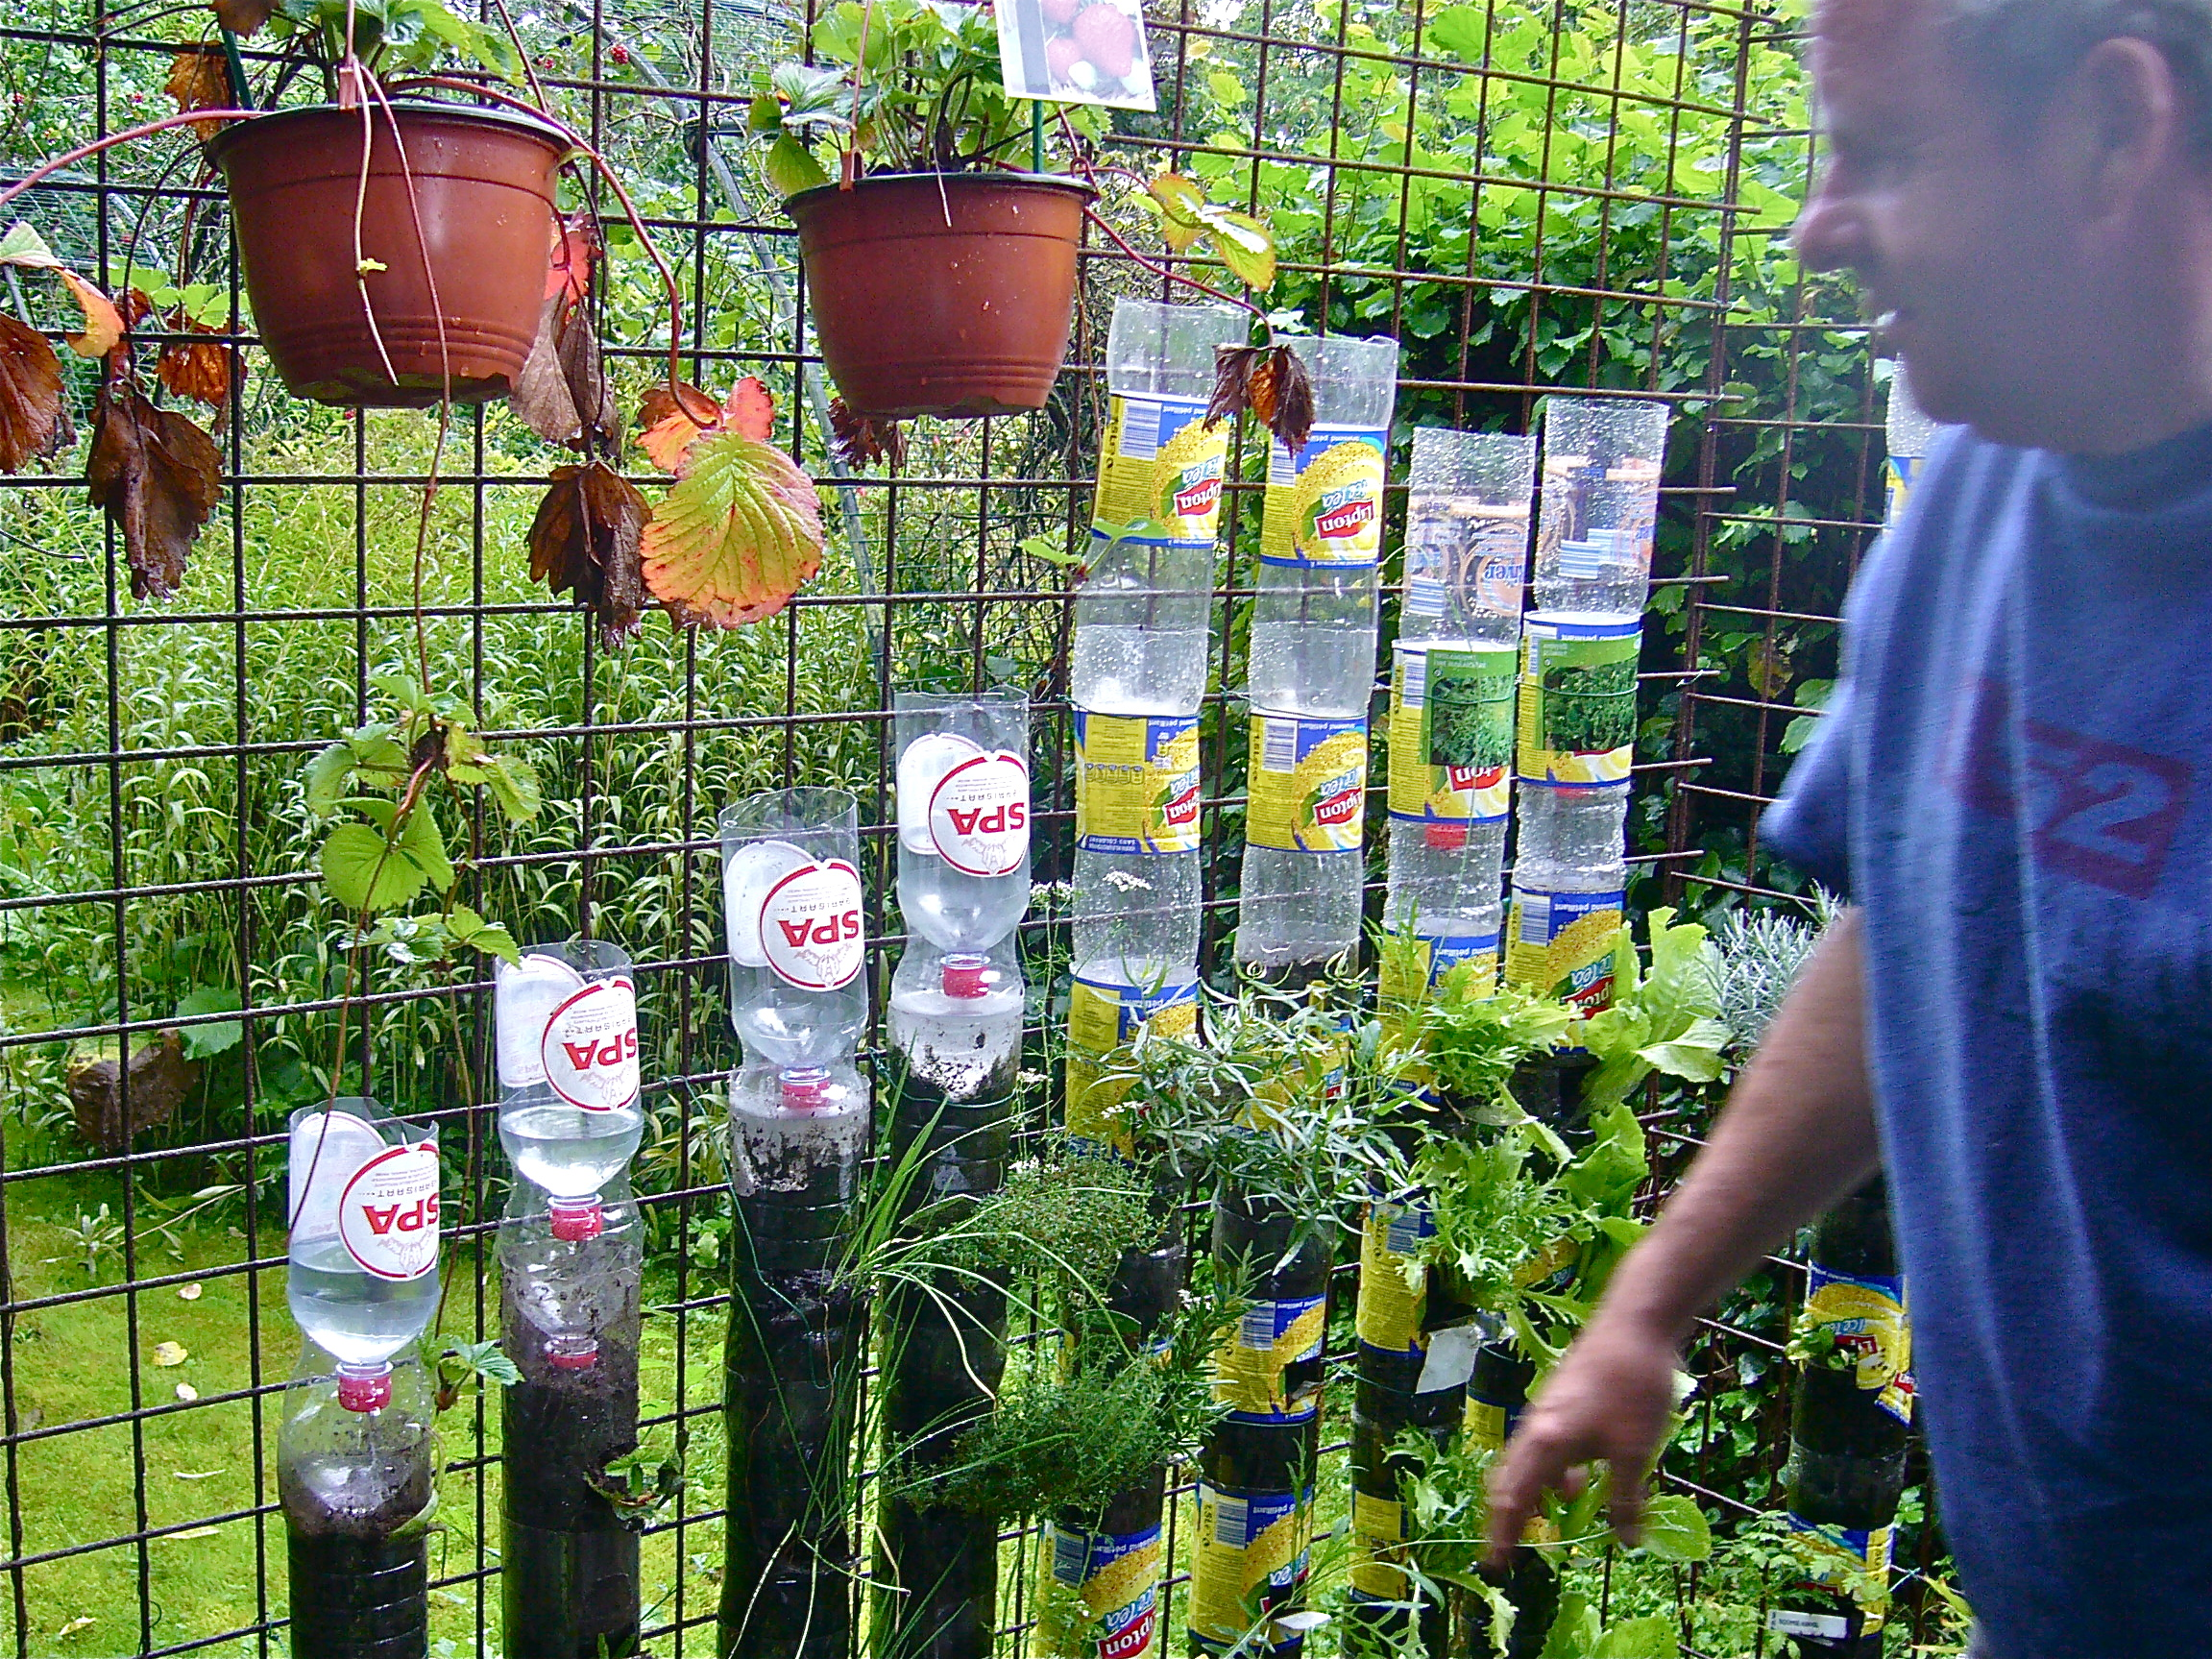 Bottle tower gardening how to start willem van cotthem - Bricolage avec bouteille plastique ...